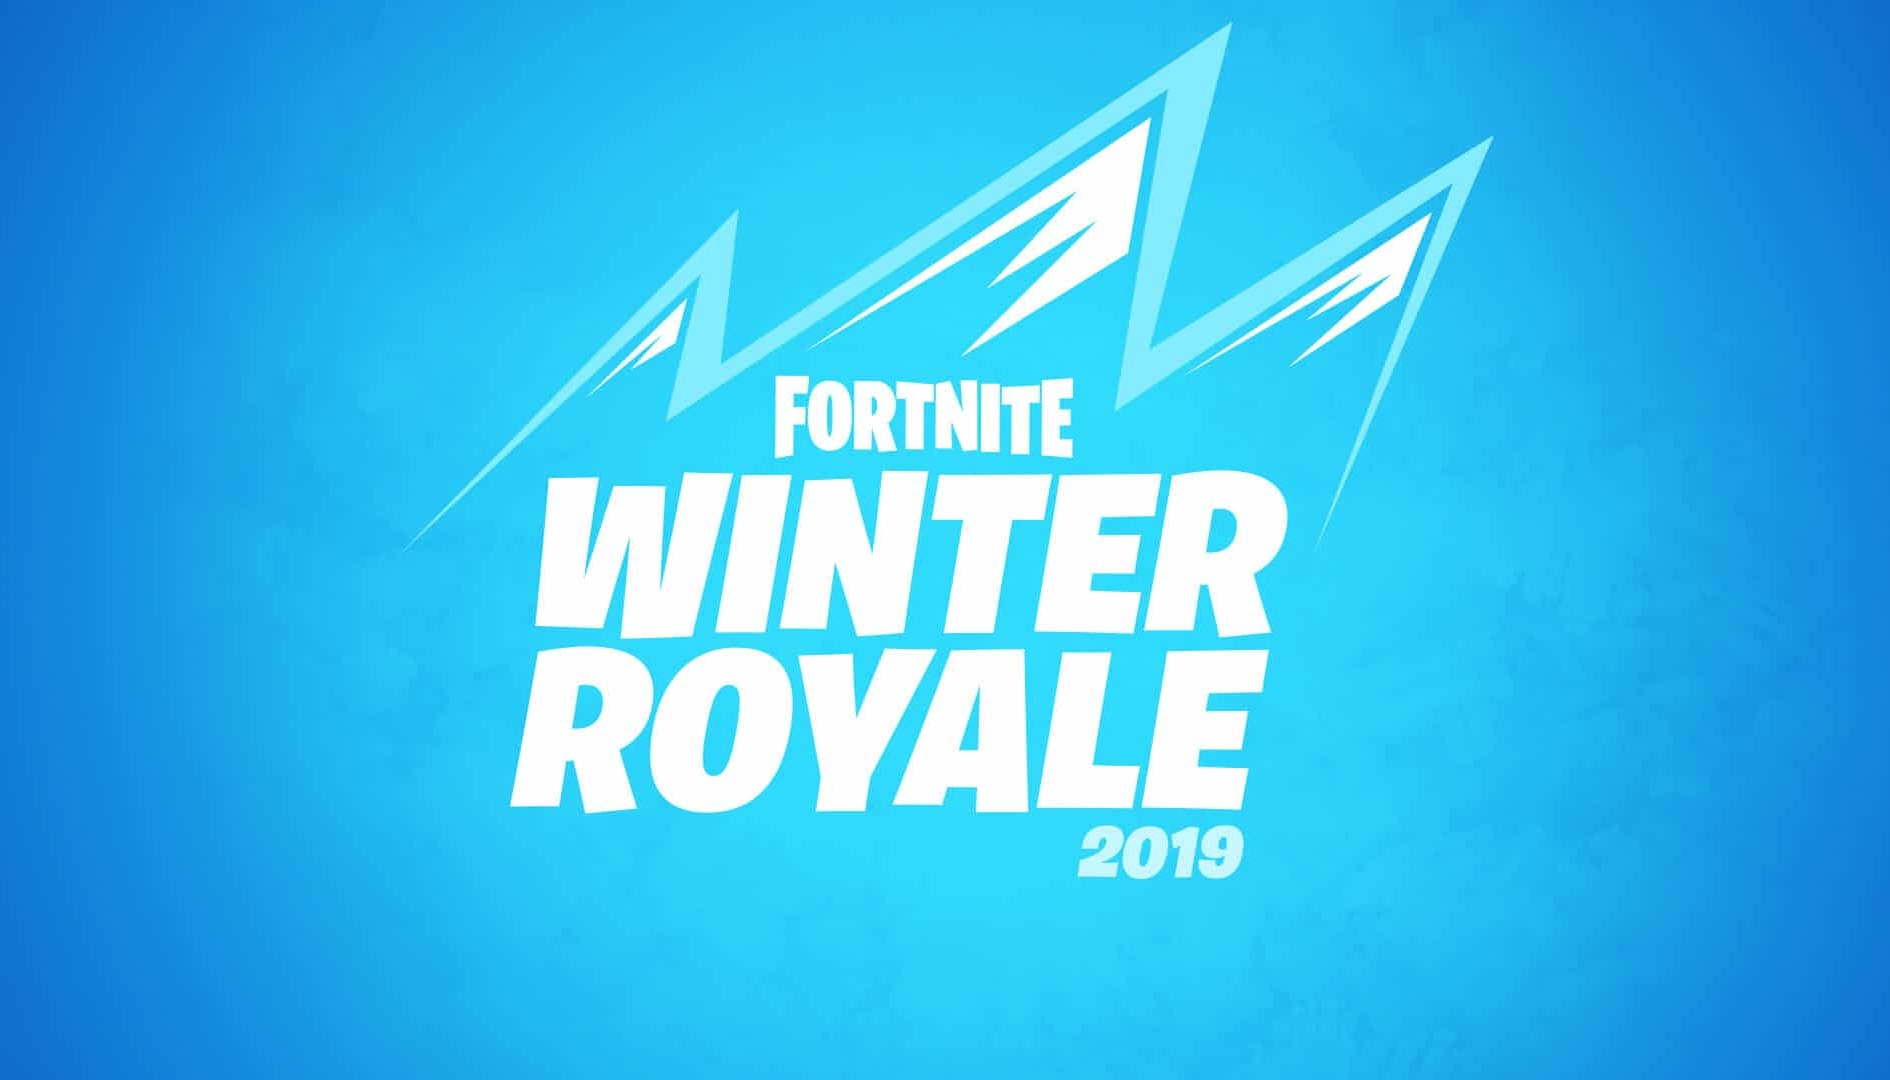 Fortnite 2: 15 milioni di dollari per il torneo Winter Royale